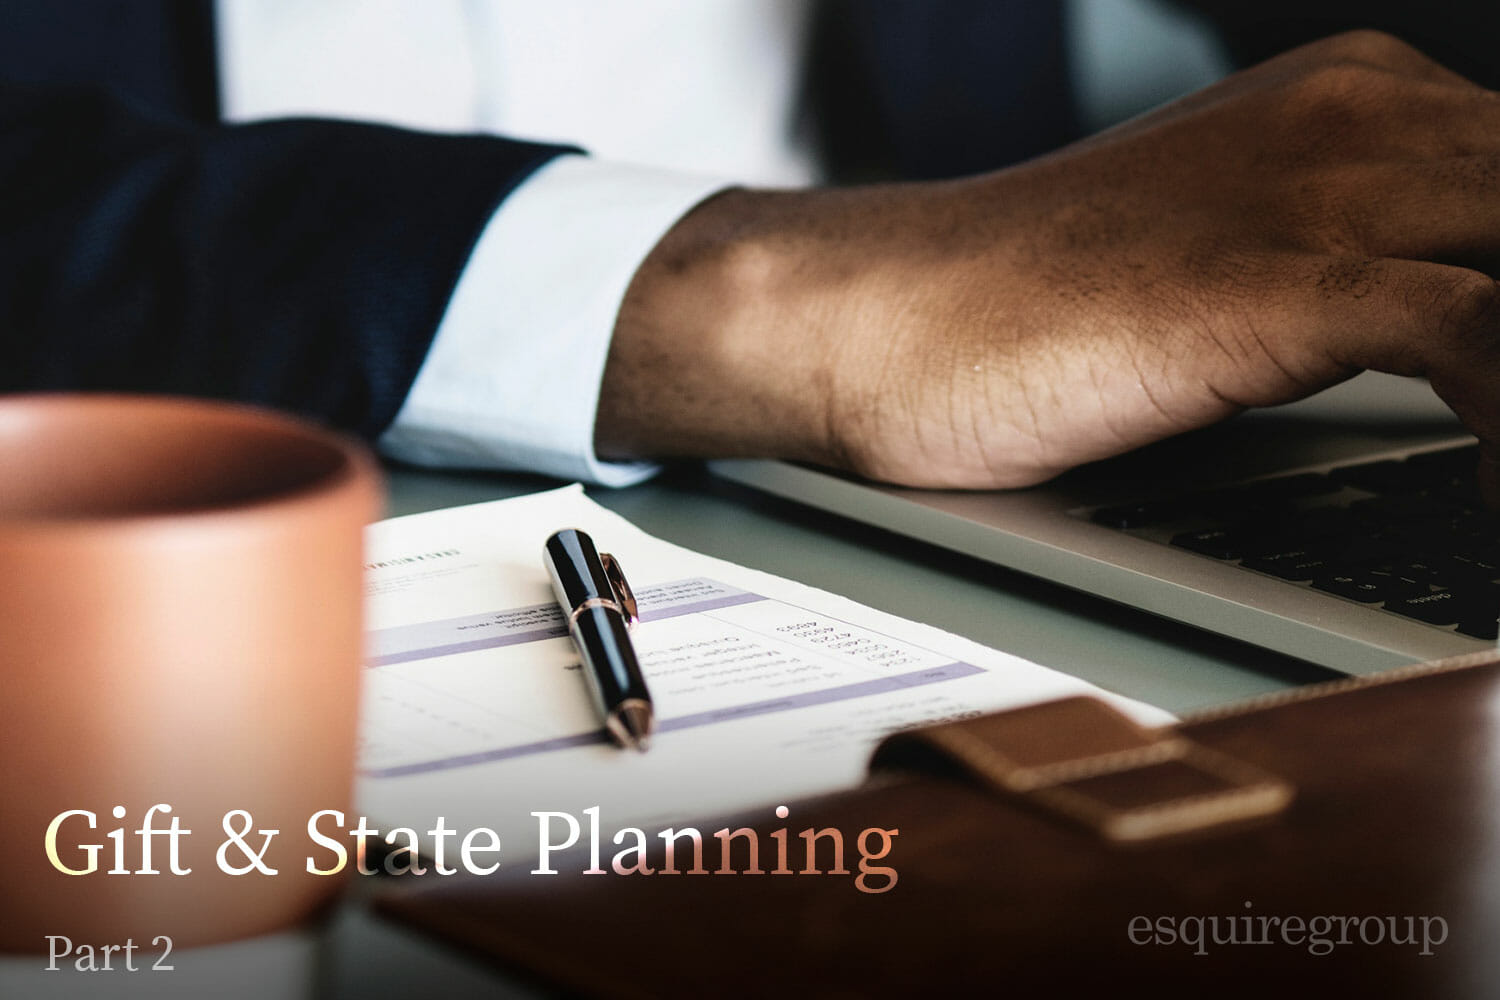 Gift & Estate Planning for Expats Part 2